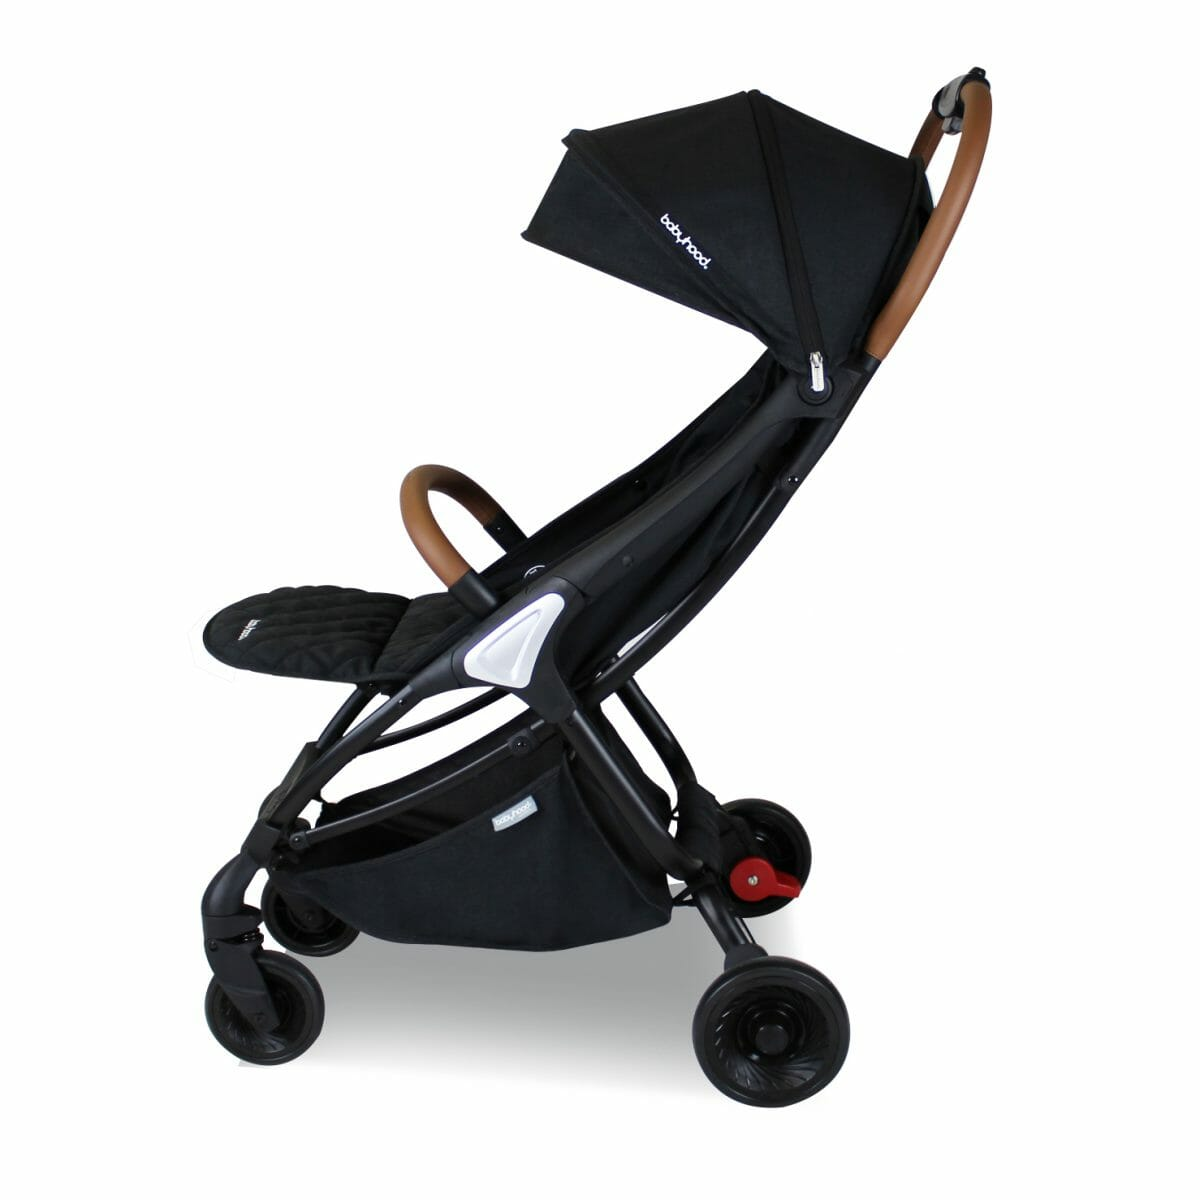 Babyhood Air Compact Stroller Foot Rest Up Seat Up